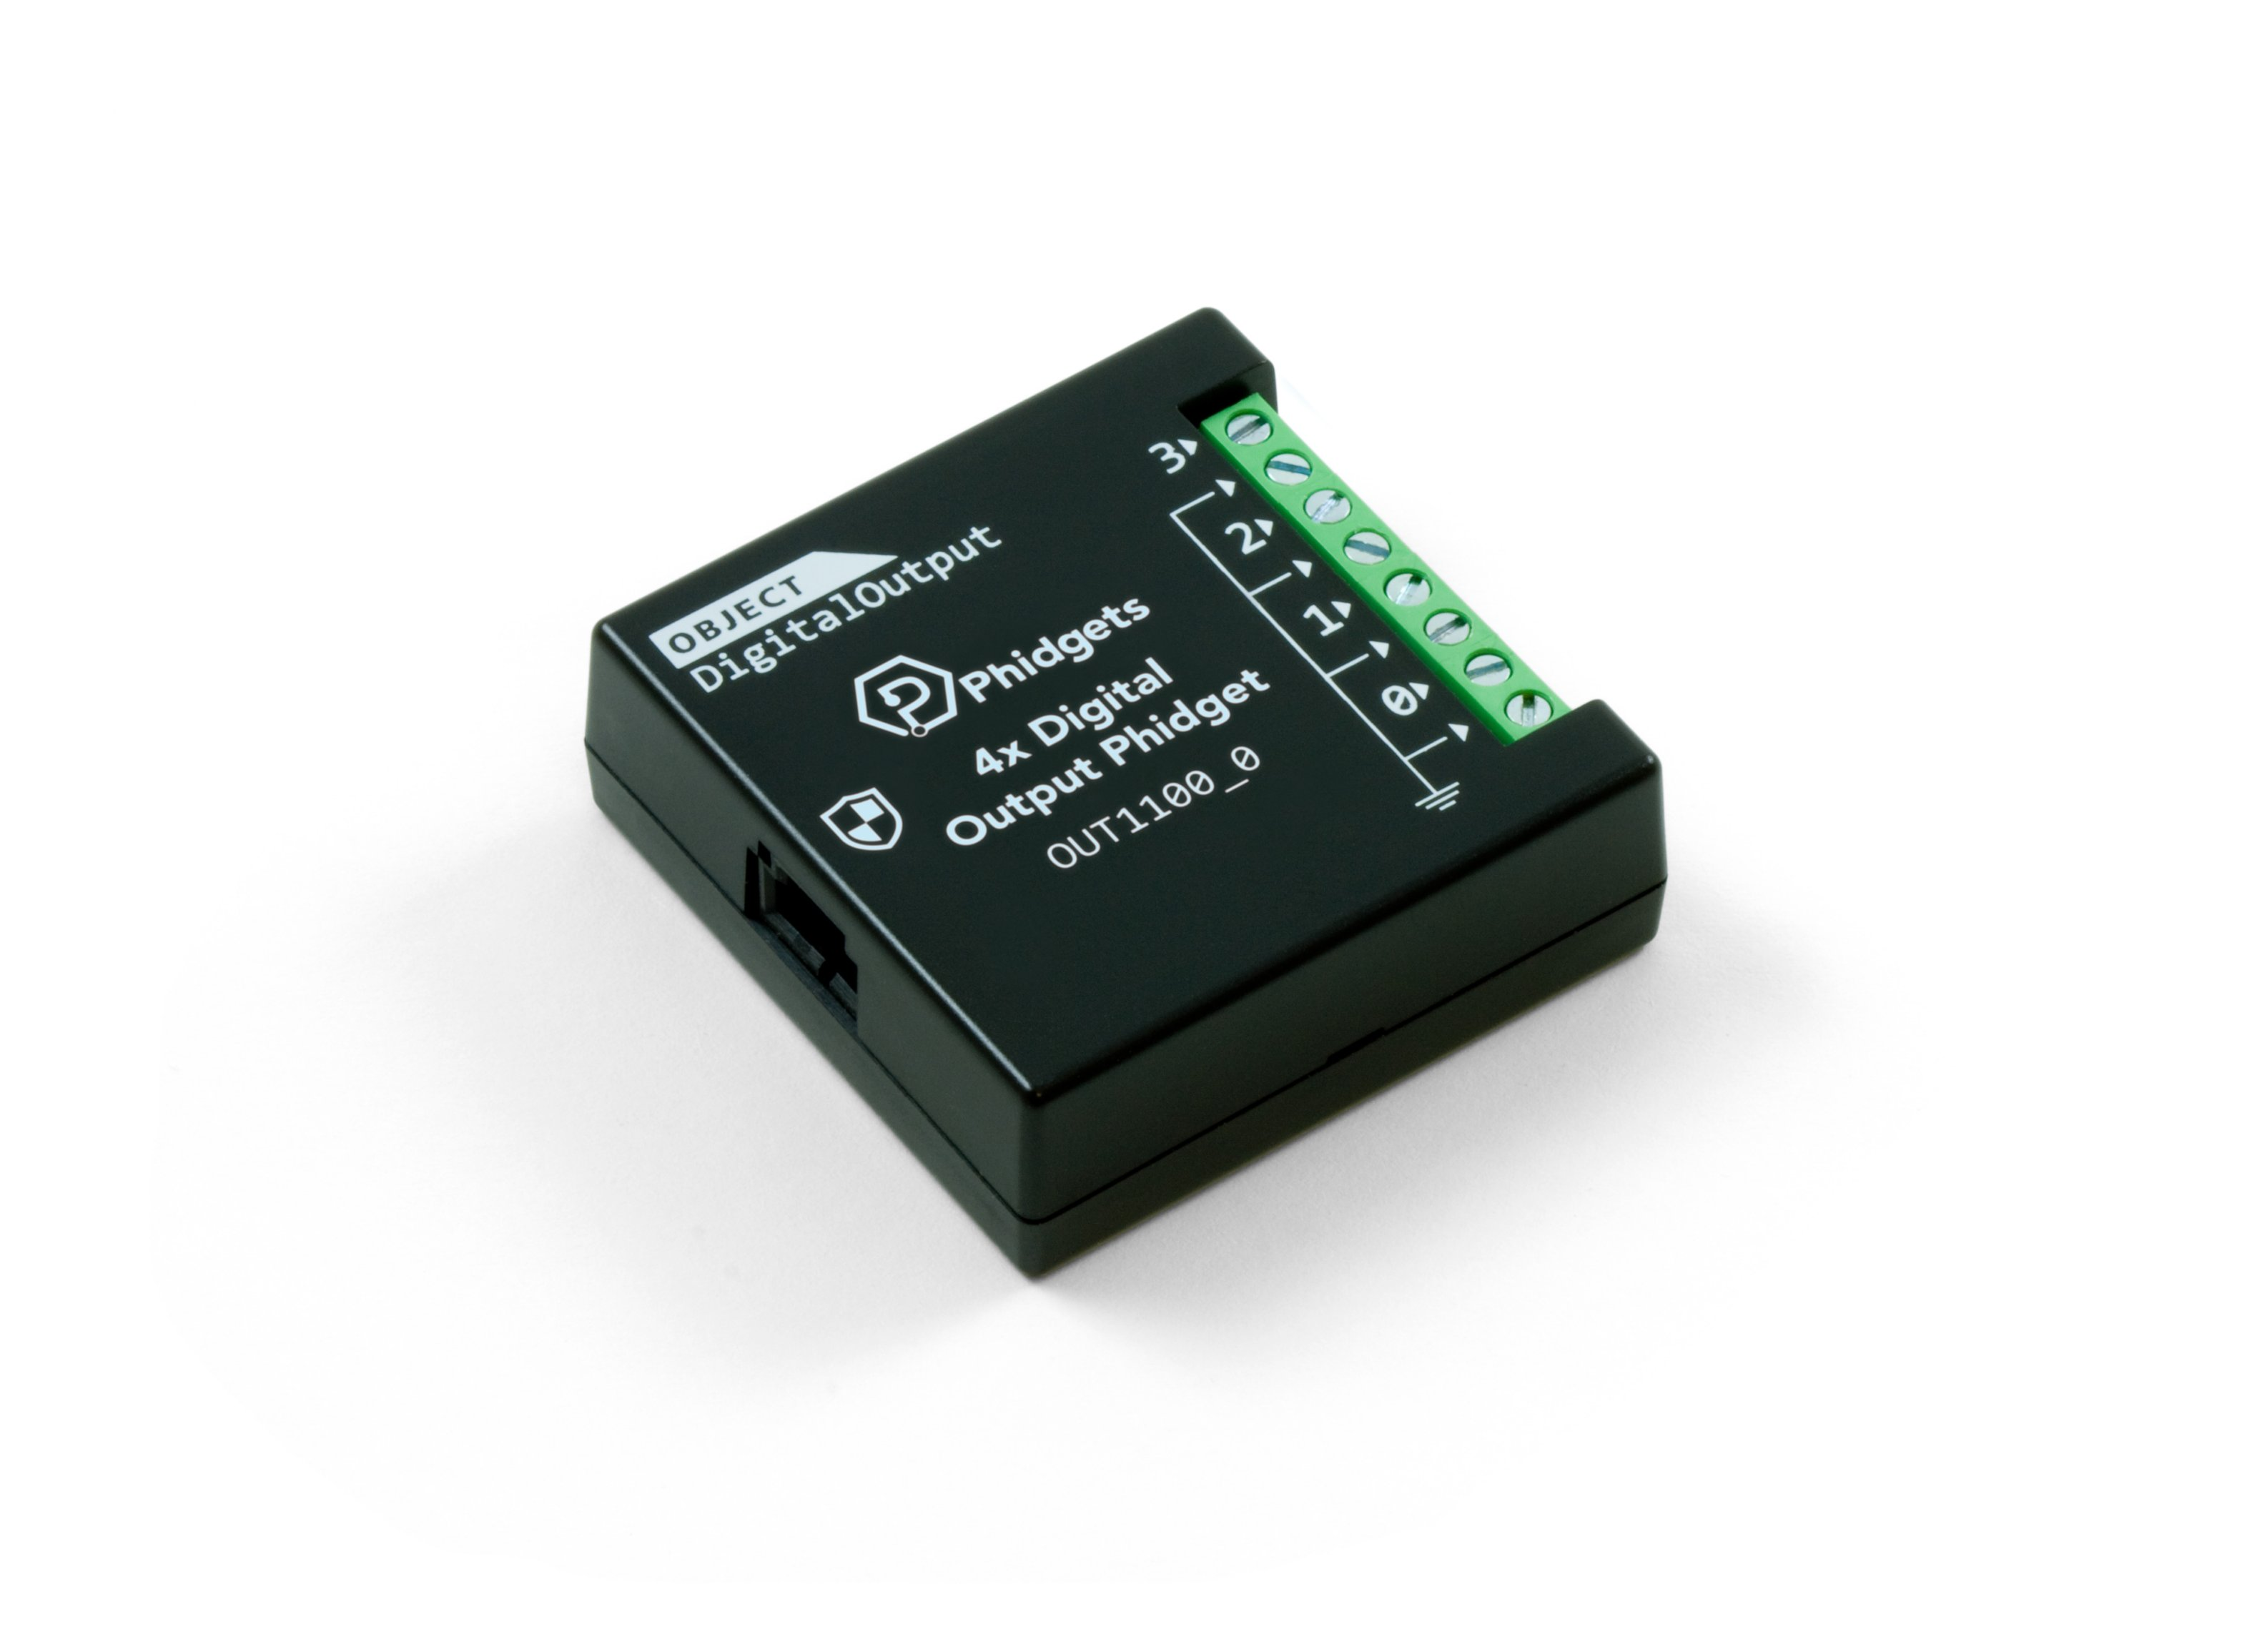 4x Digital Output Phidget Out1100 0 At Phidgets Next The Four Relay Outputs From Remote Control Inbuilt Relays